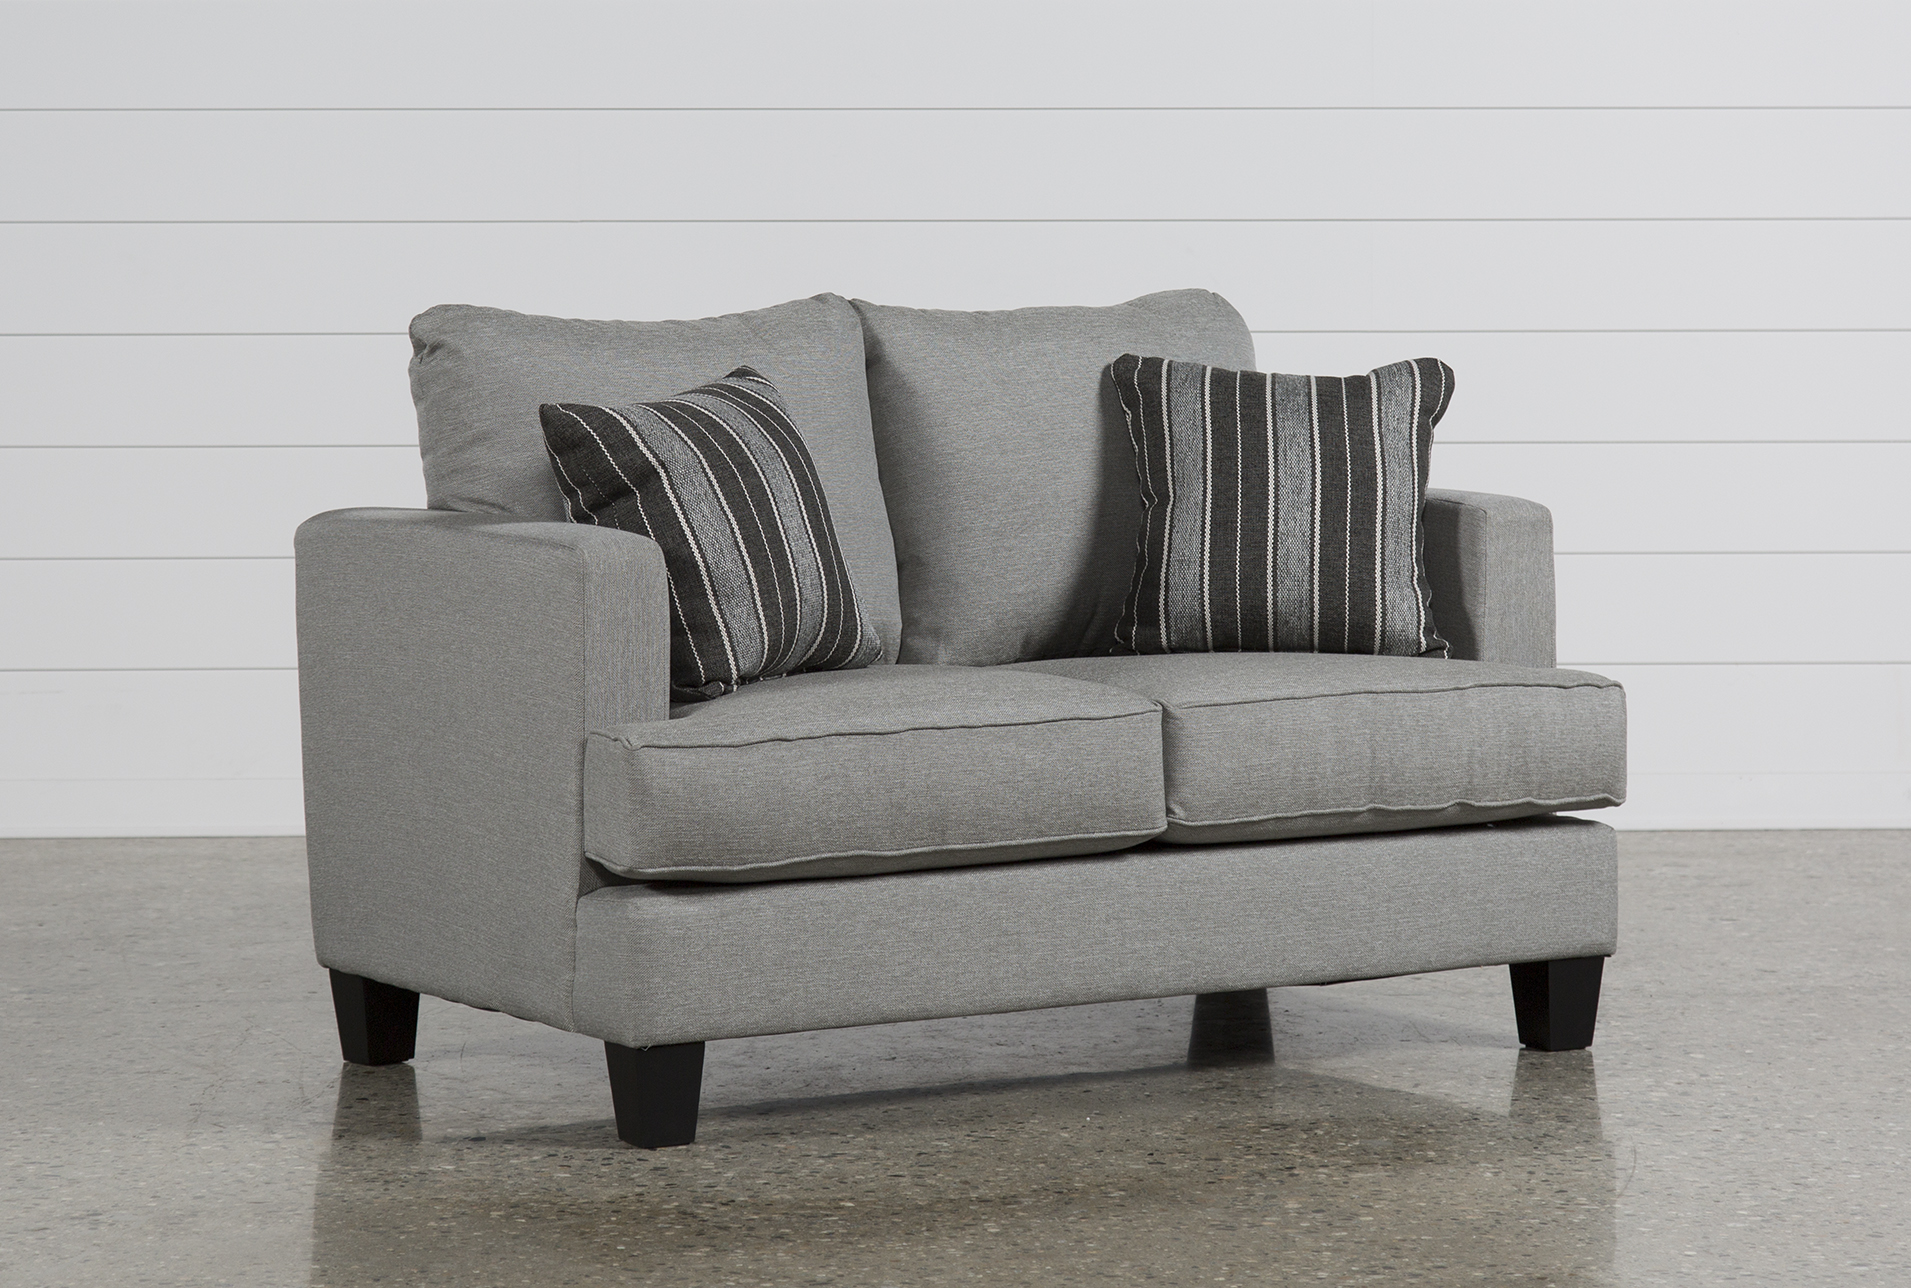 Charmant Grace Loveseat (Qty: 1) Has Been Successfully Added To Your Cart.